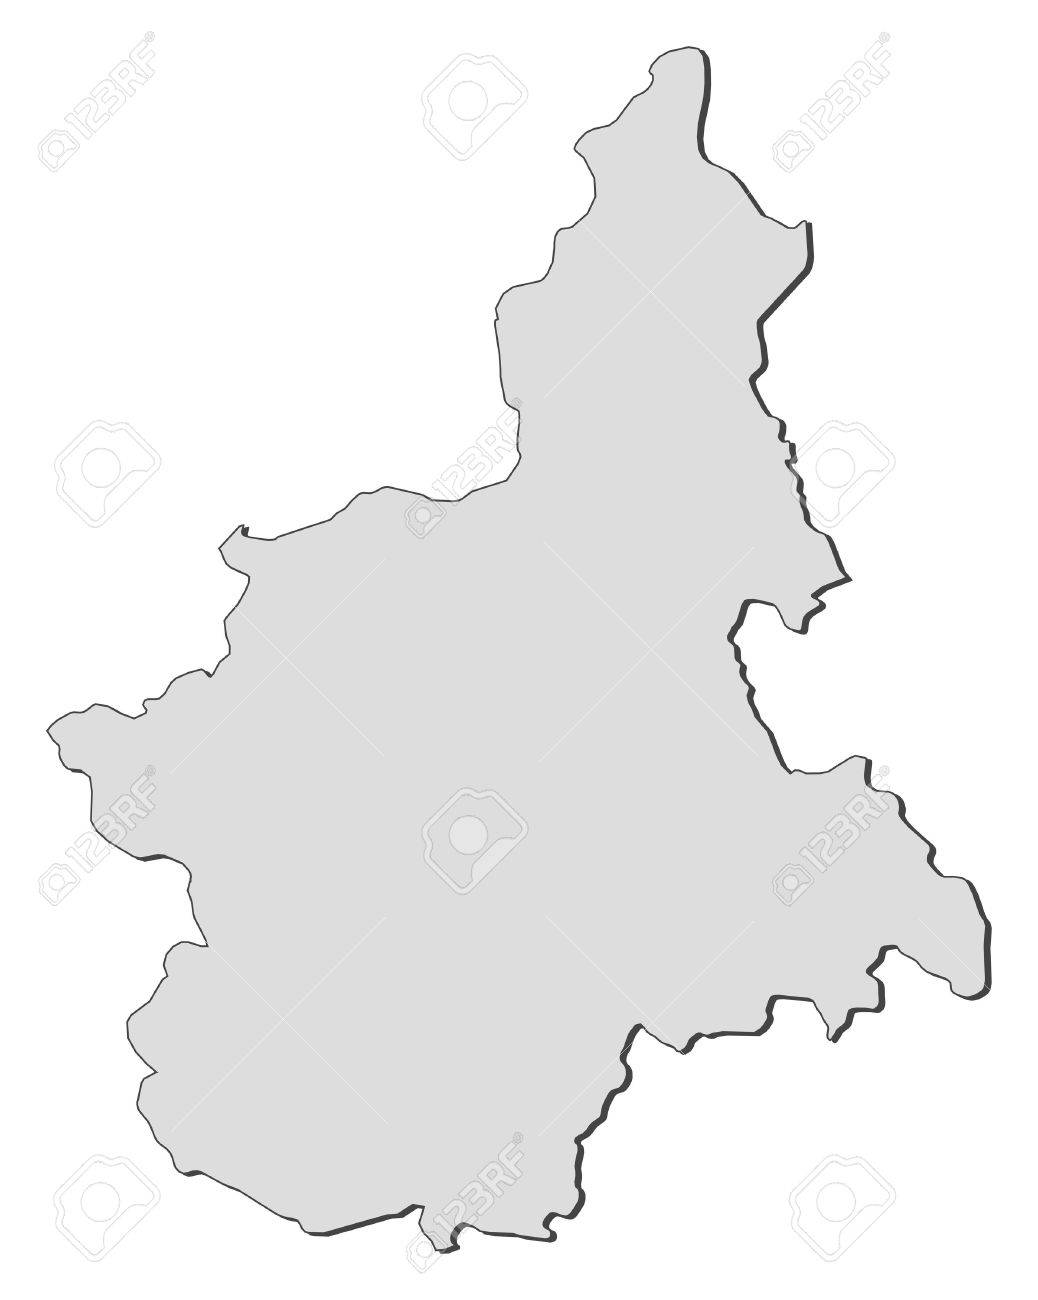 Map of Piedmont, a region of Italy. - 14396189